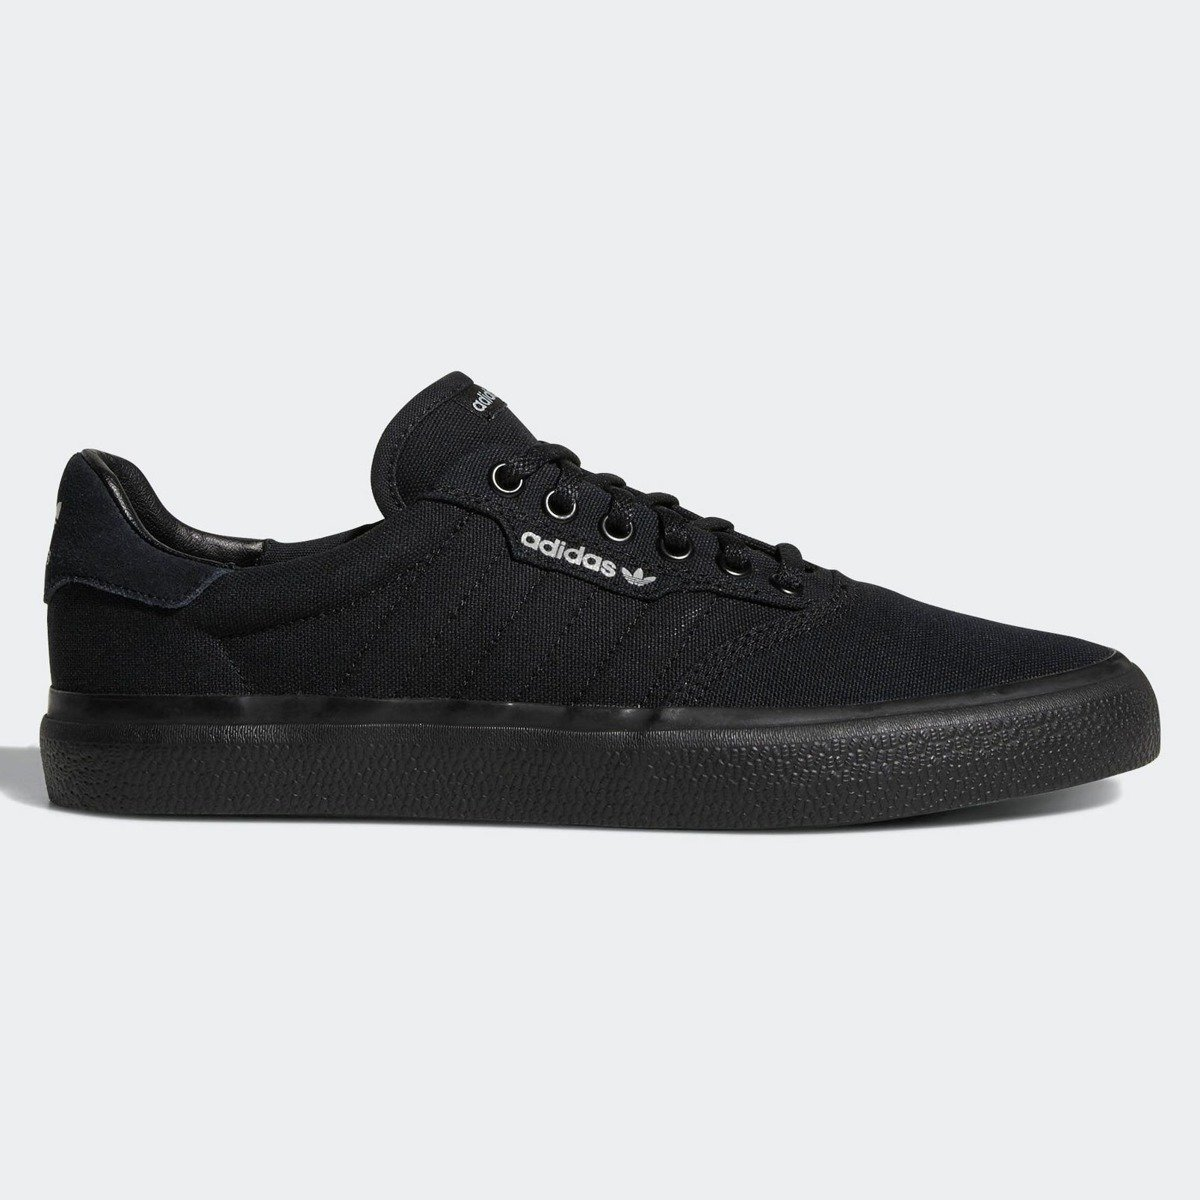 88ab8d4a66fb6 adidas 3 mc shoes black | Shoes \ Adidas Skateboarding Brands \ Adidas  Originals SALE \ Sale - 40% \ Shoes | Skateshop Miniramp.pl